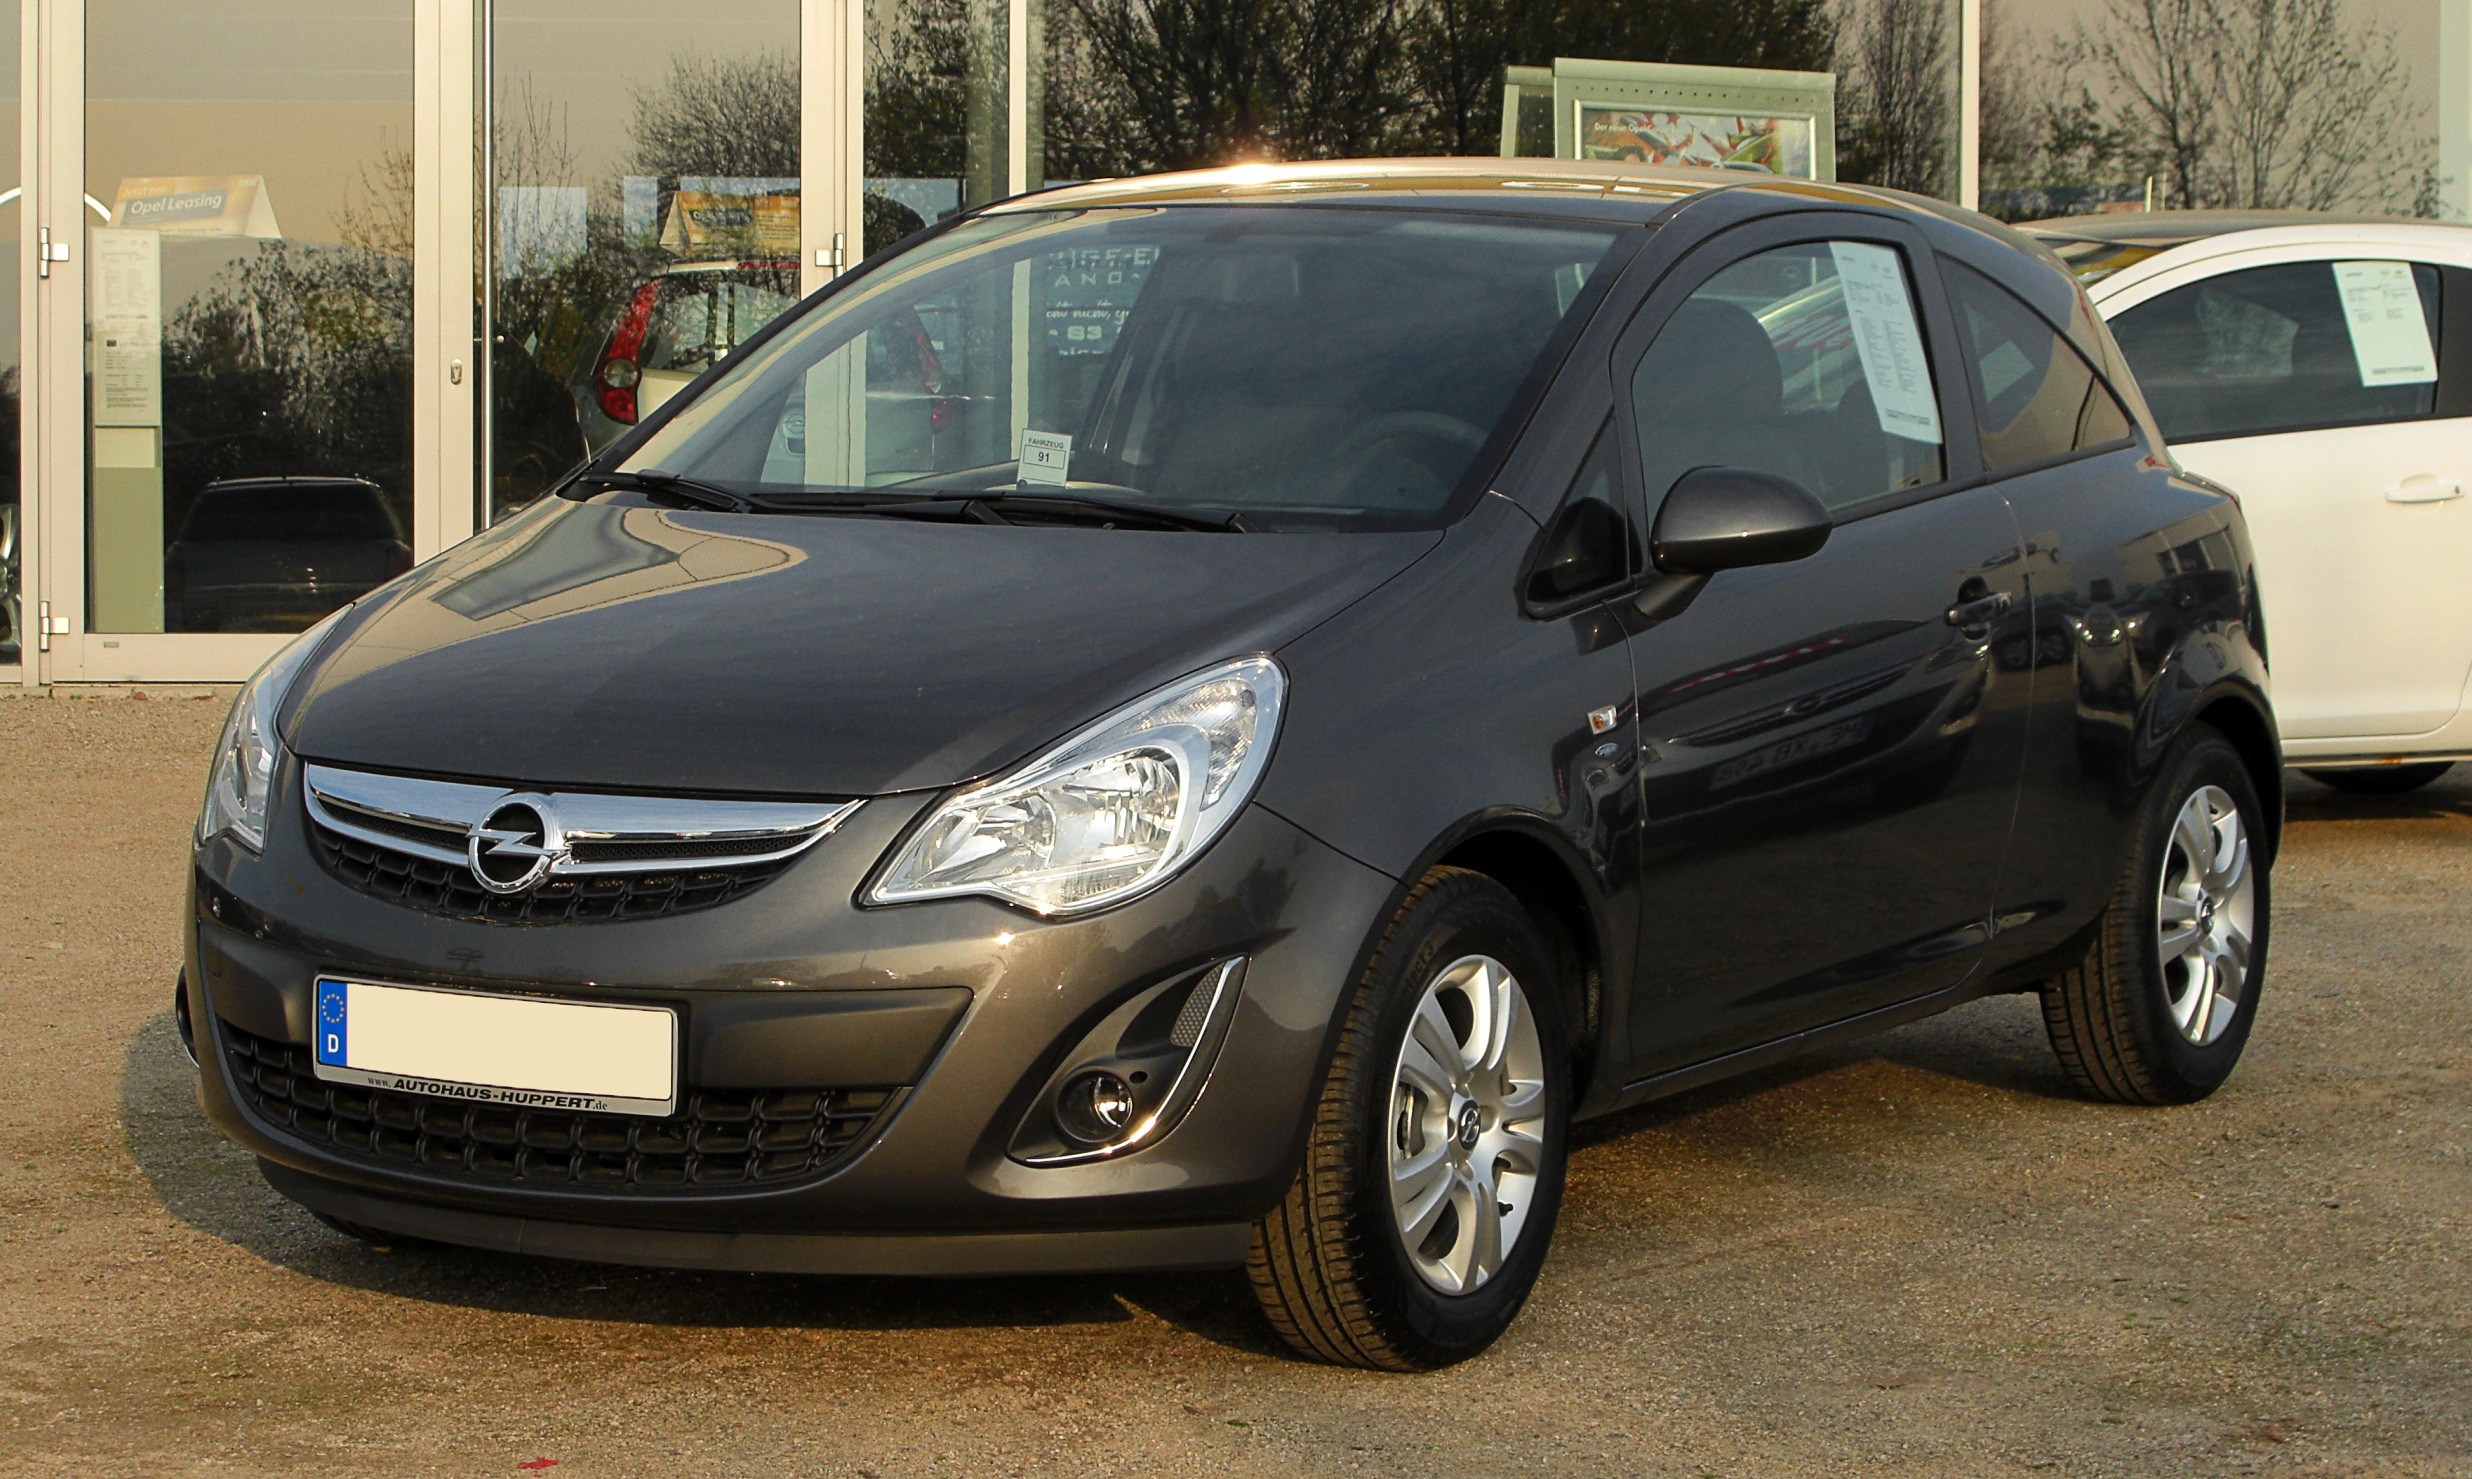 2011 opel corsa d pictures information and specs auto. Black Bedroom Furniture Sets. Home Design Ideas